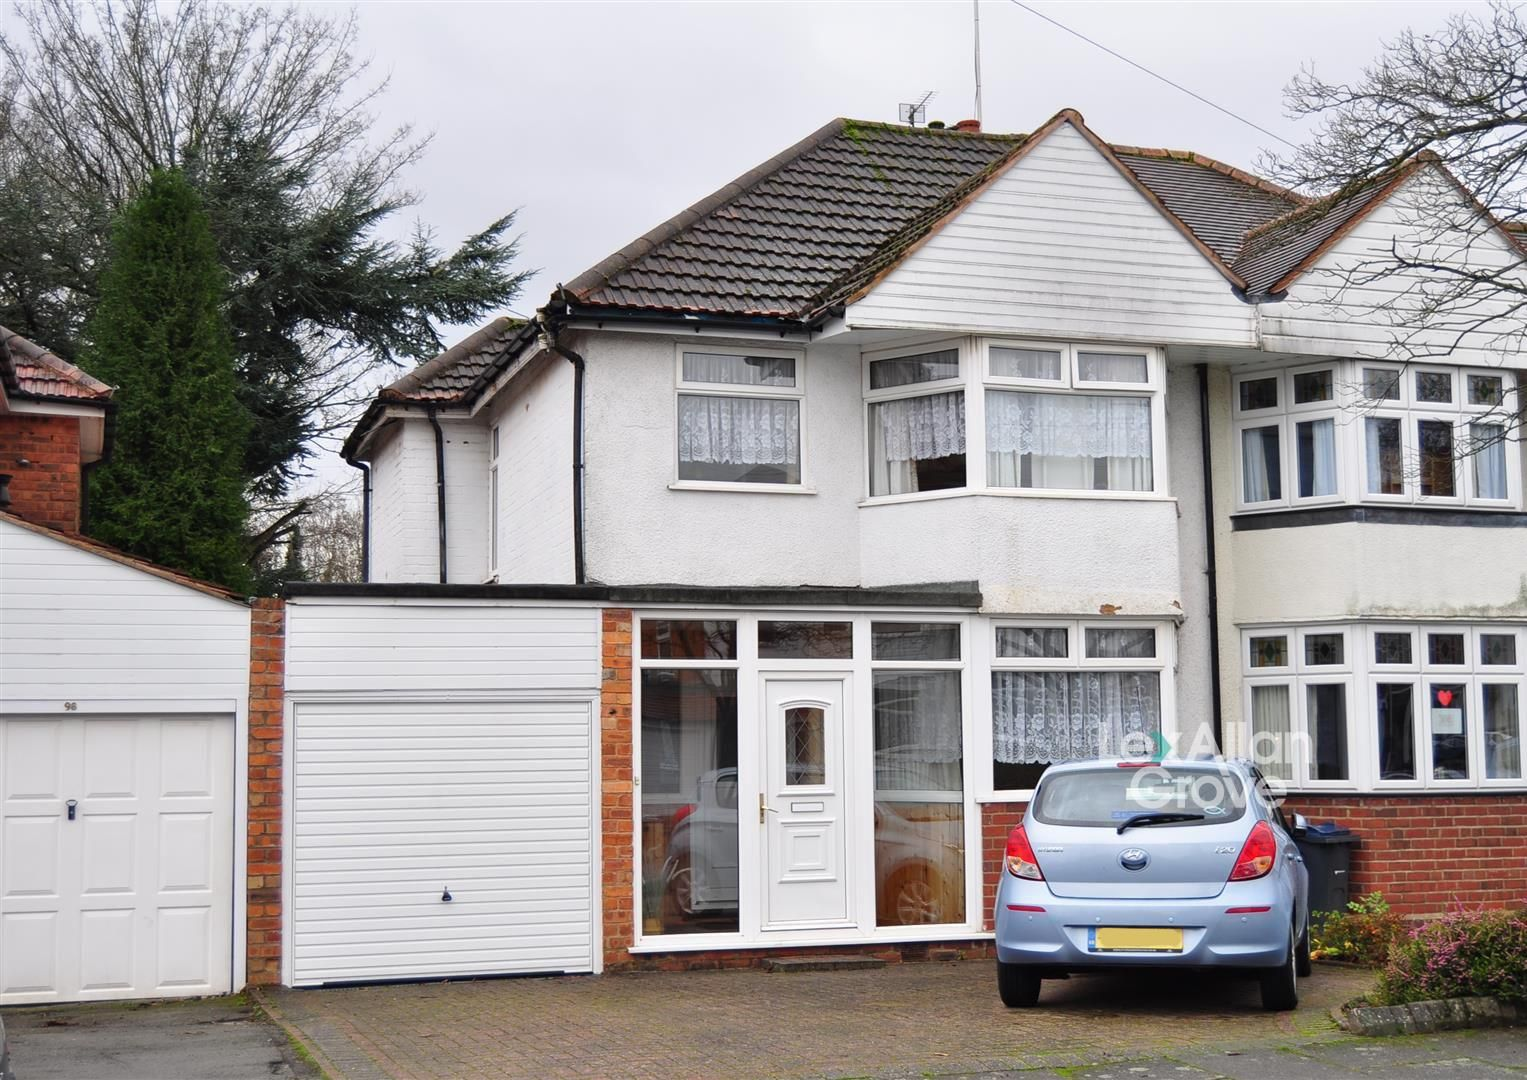 3 bed semi-detached for sale, B17